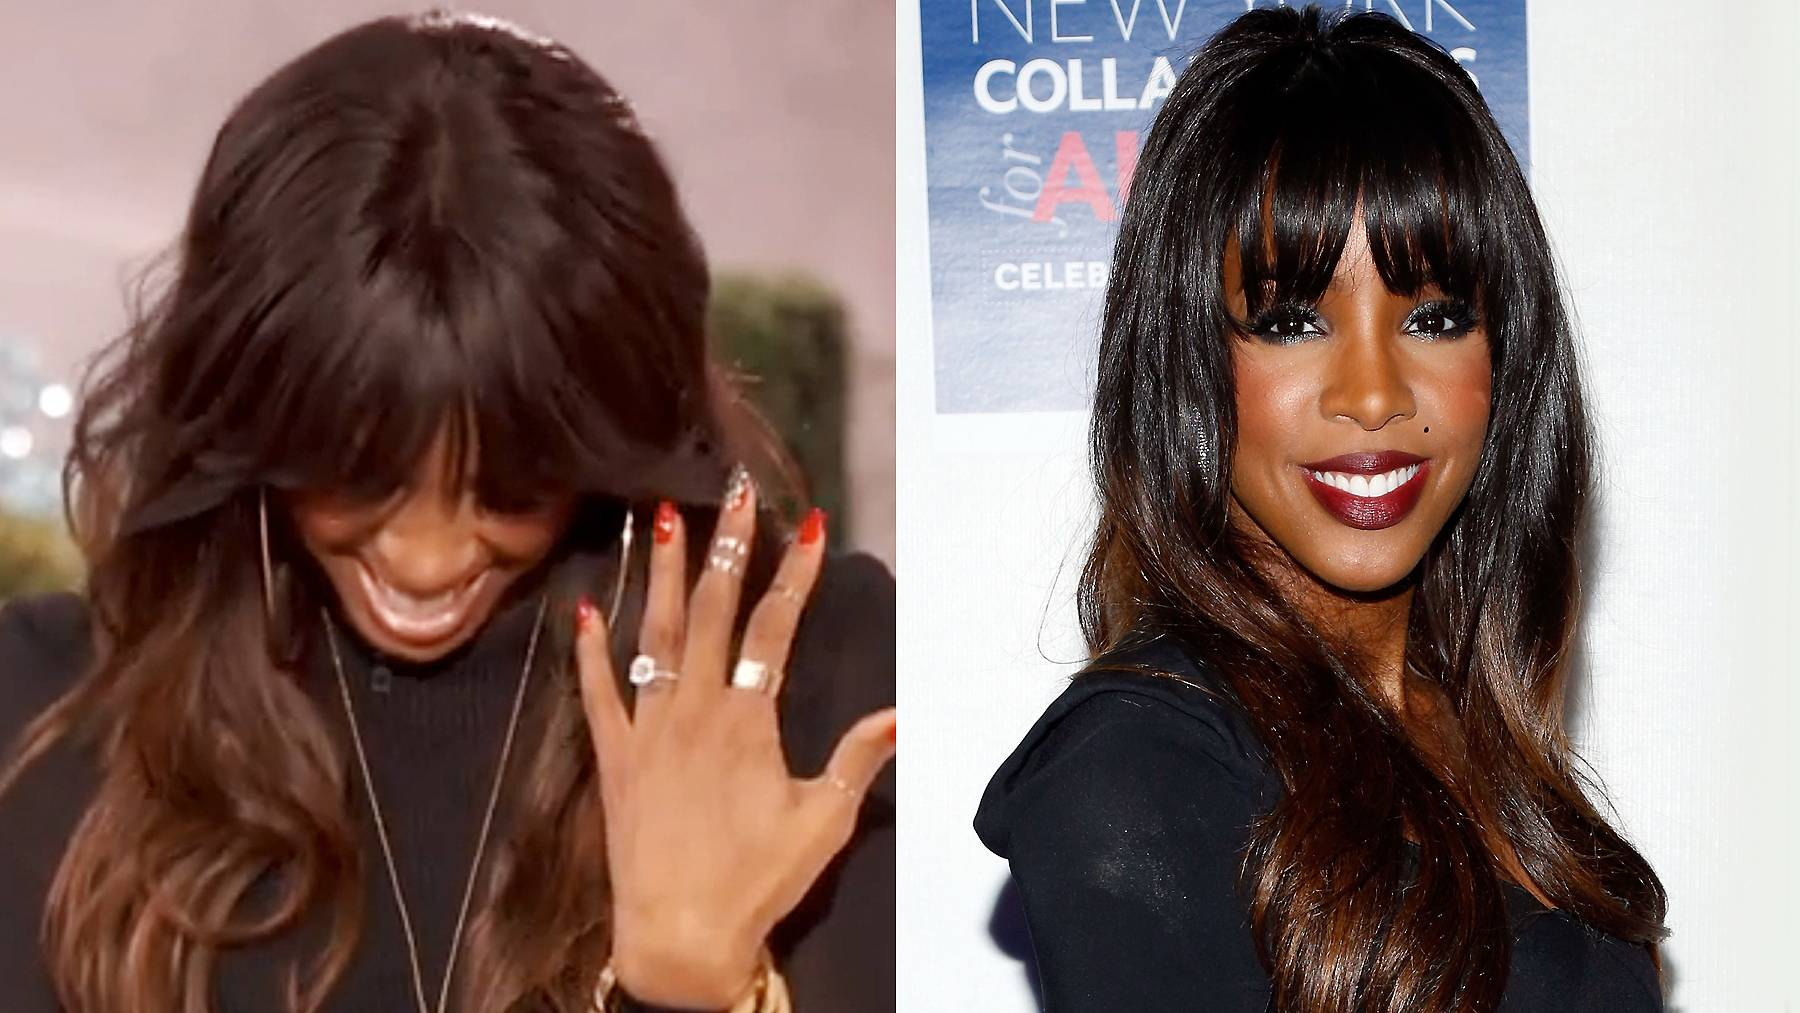 """Kelly Rowland  - After weeks of speculation, the newly engaged singer confirmed in December 2013 that beau Tim Witherspoon """"put a ring on it,"""" flashing her stunning new bling on the Queen Latifah Show. From what we can see, she's working with a huge cushion-cut diamond set on a solid gold band. They made it official in Costa Rica on May 9, 2014.  (Photos from left: The Queen Latifah Show/CBS, Cindy Ord/Getty Images for Autism Speaks)"""